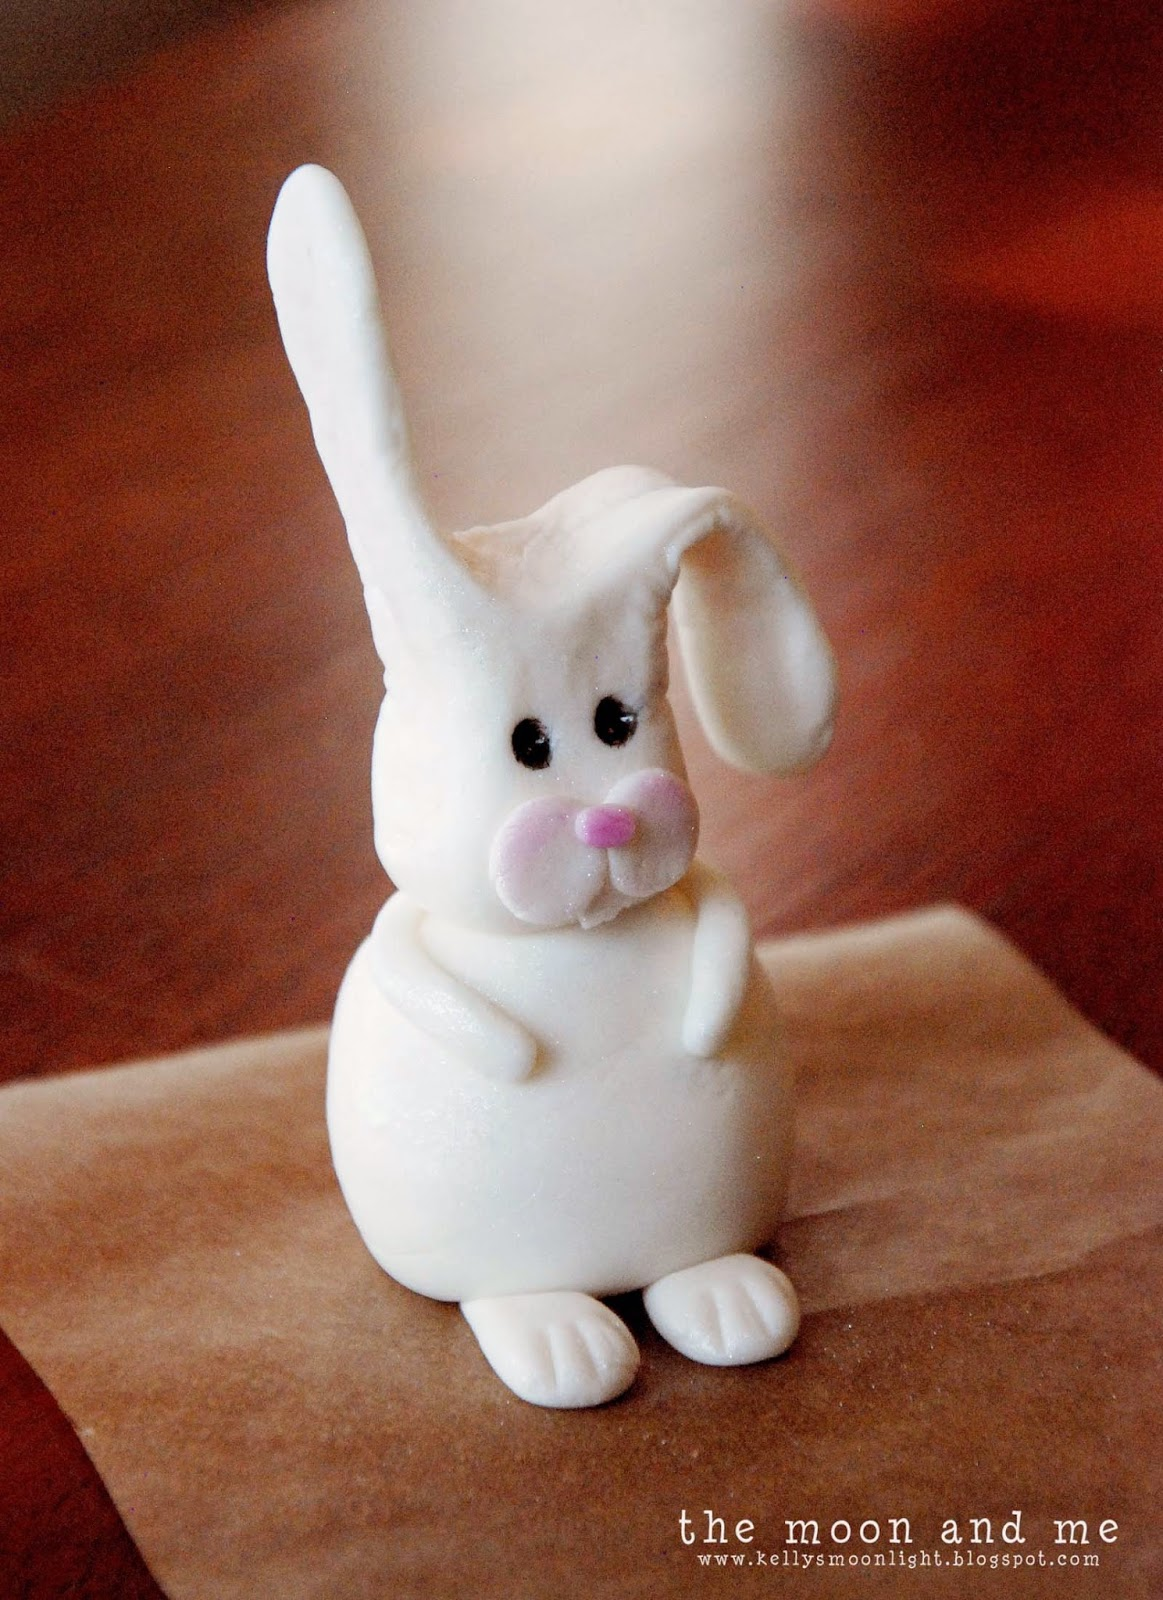 The Moon and Me: How To Make A Fondant Bunny